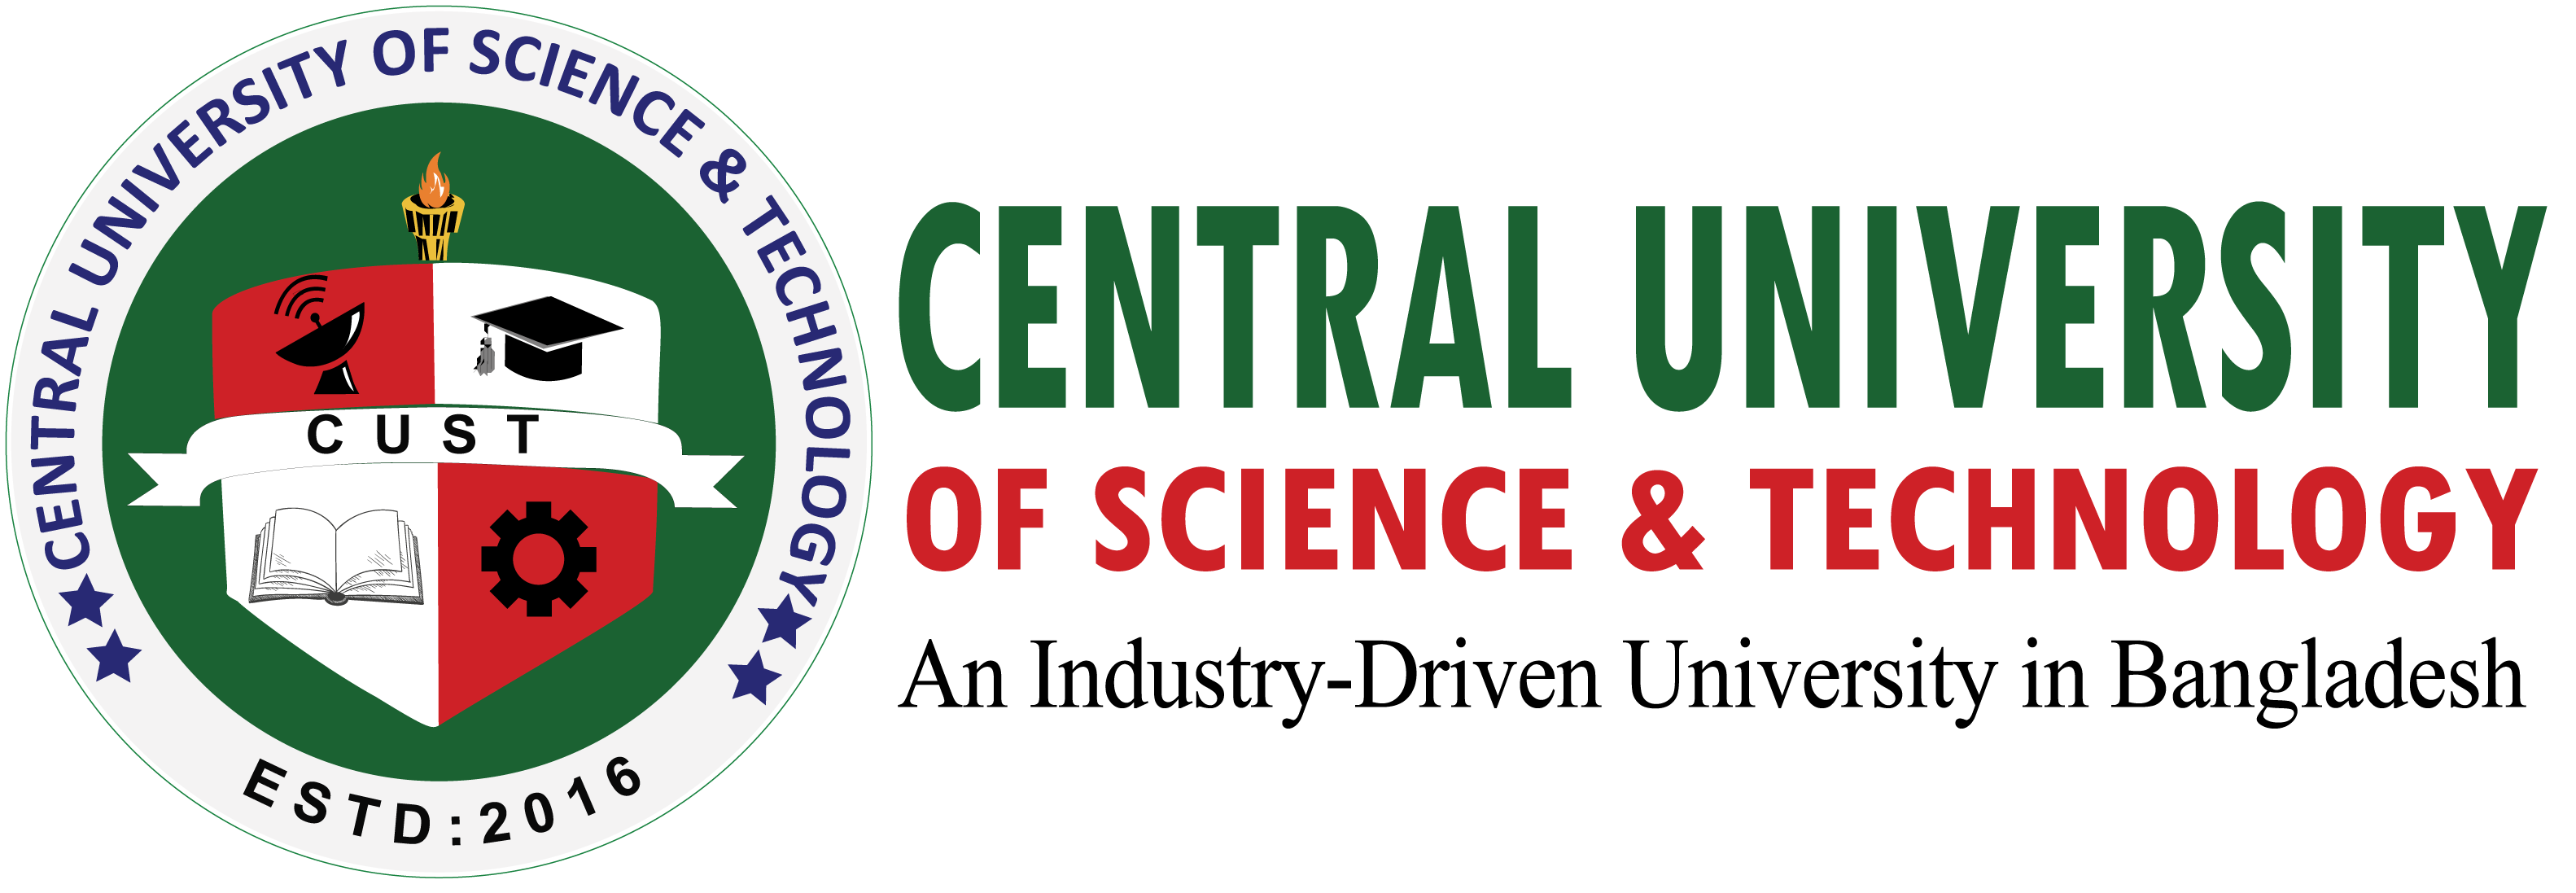 Best Private University in Bangladesh - Central University of Science & Technology